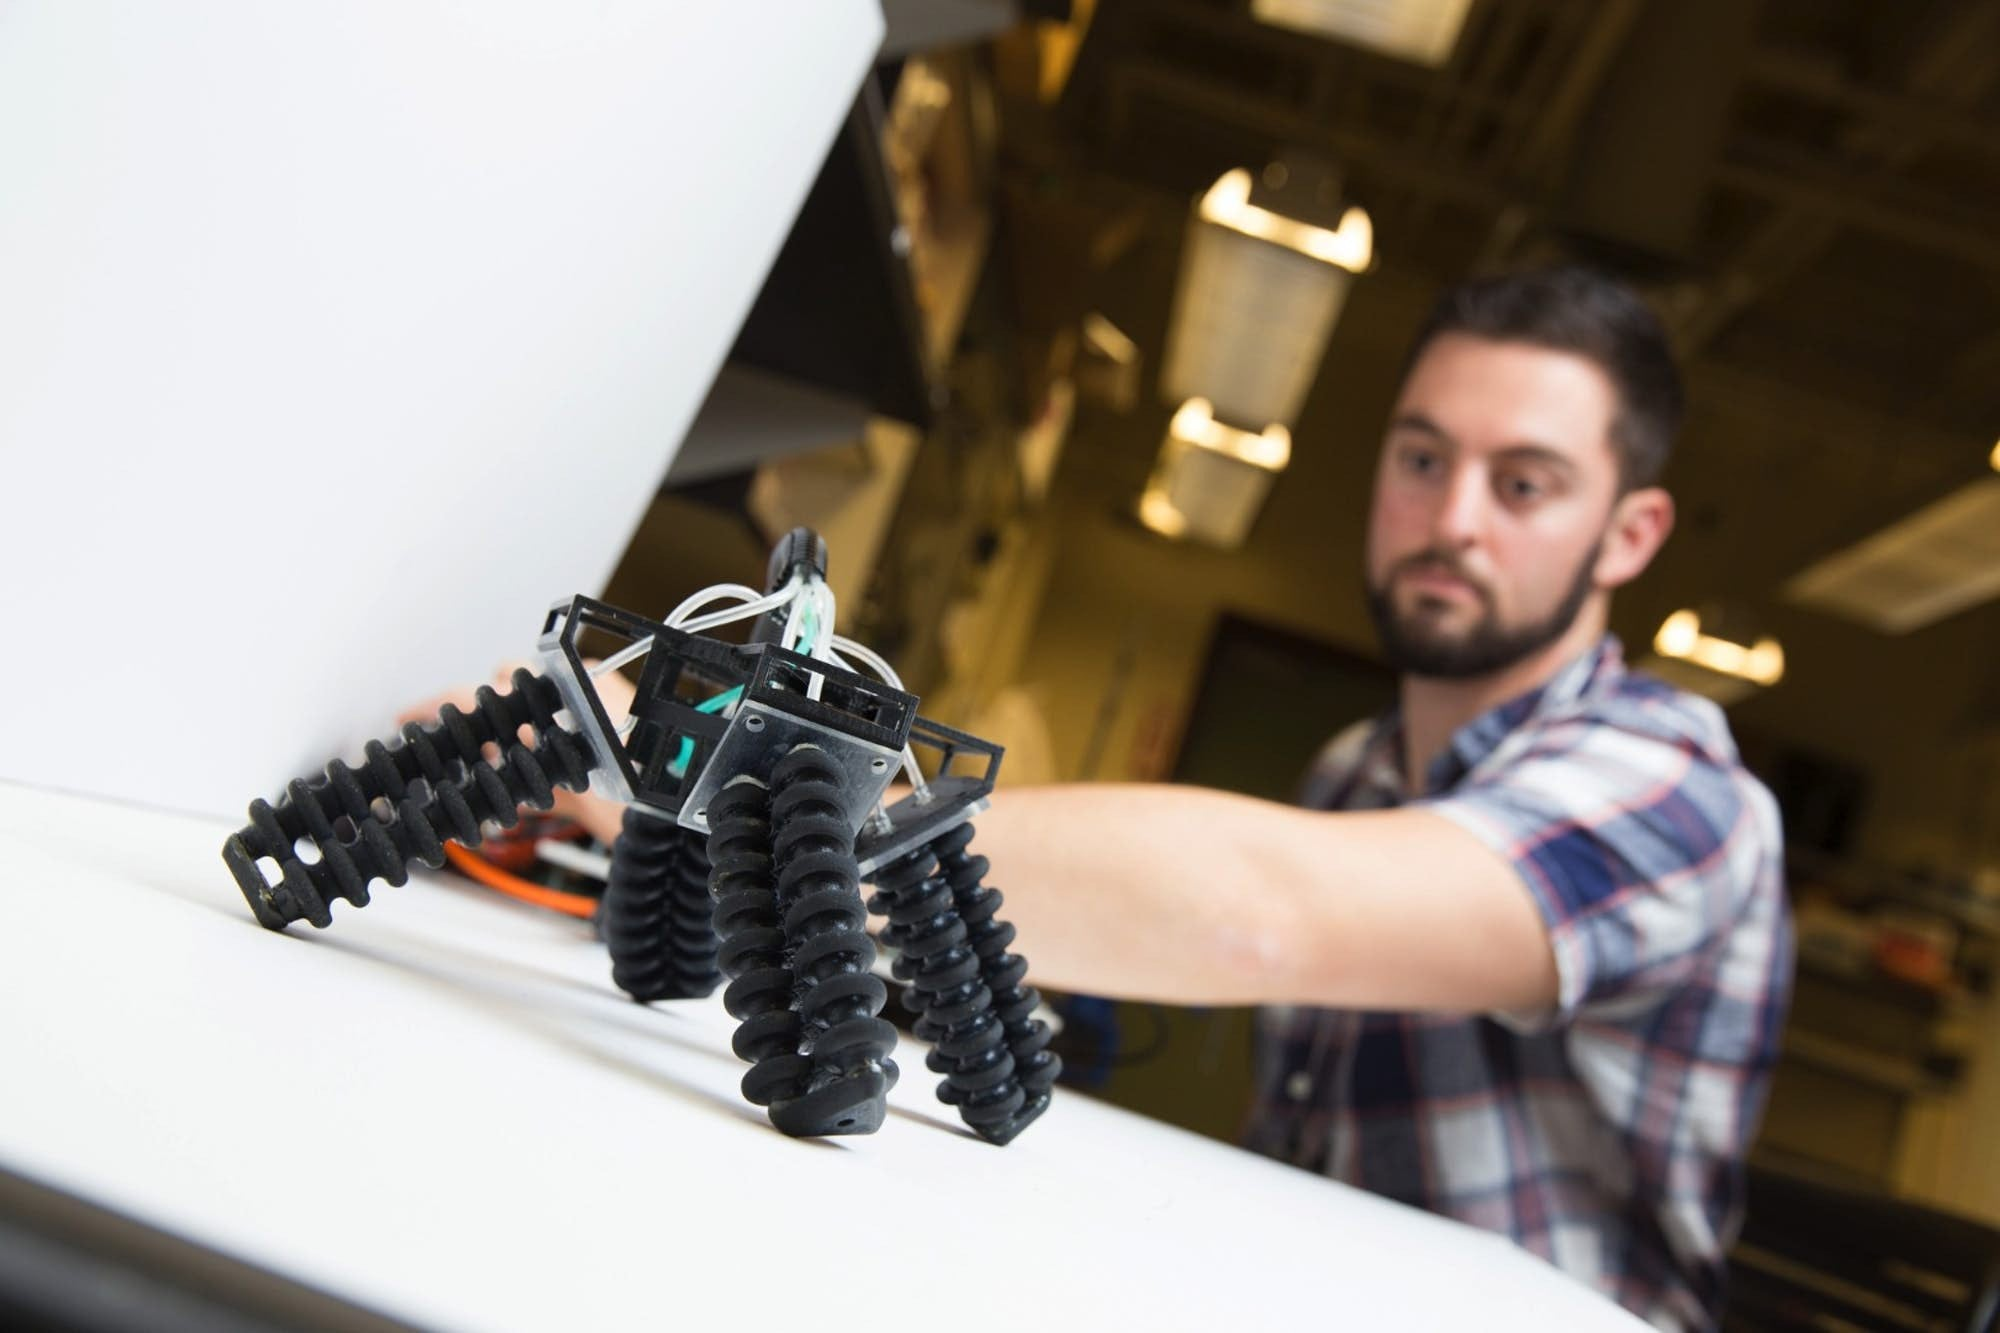 The First Soft 3D Printed Robot